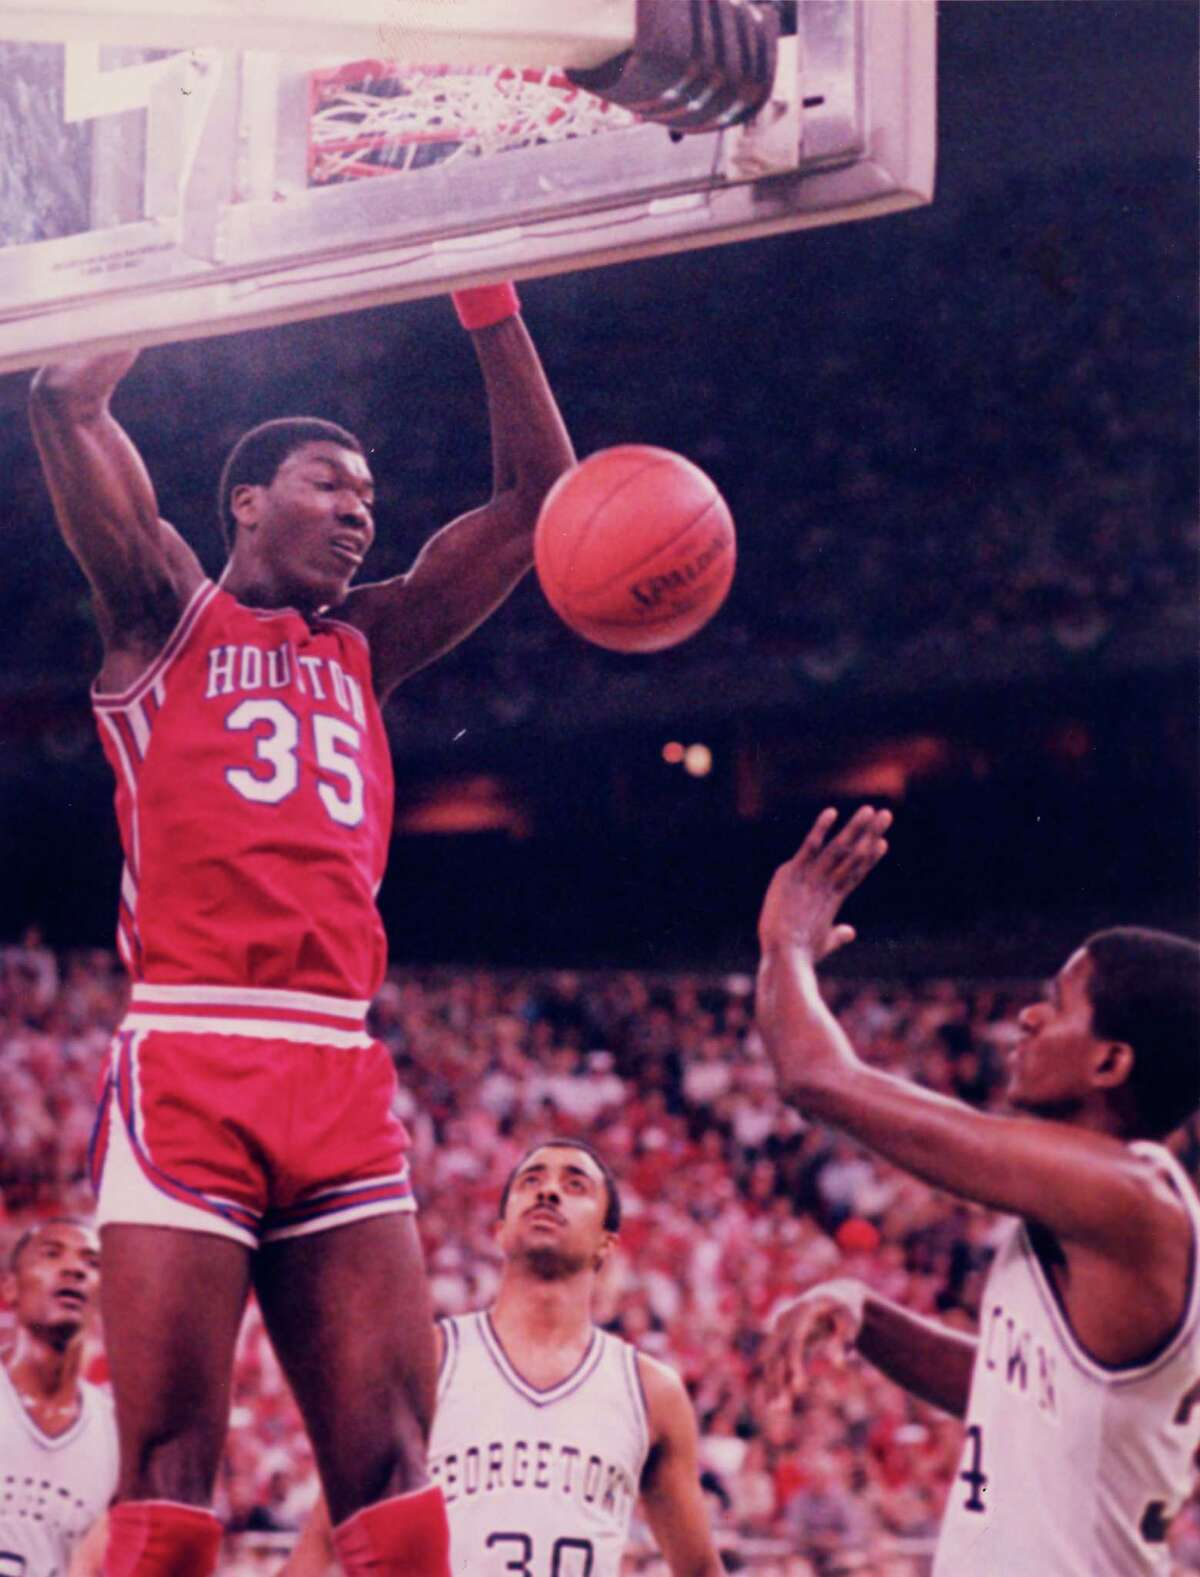 Final Four Appearances: 5 (1967, 1968, 1982, 1983, 1984) National Championships: None. The Cougars made it to the Final Four five times under the leadership of legendary coach Guy Lewis. In the early 1980s, the Phi Slama Jama teams under Lewis were known for their fast-paced, above-the-rim style basketball. The team, featuring Hakeem Olajuwon (35) and Clyde Drexler, made it to the Final Four each year from 1982-1984 (Drexler left after the 1983 season.) The team was never able to bring home the title, though, losing to North Carolina in 1982, NC State in 1983 and Patrick Ewing-led Georgetown in 1984. While UH has never brought home the championship, their success under Lewis has made them a household name among college basketball greats.